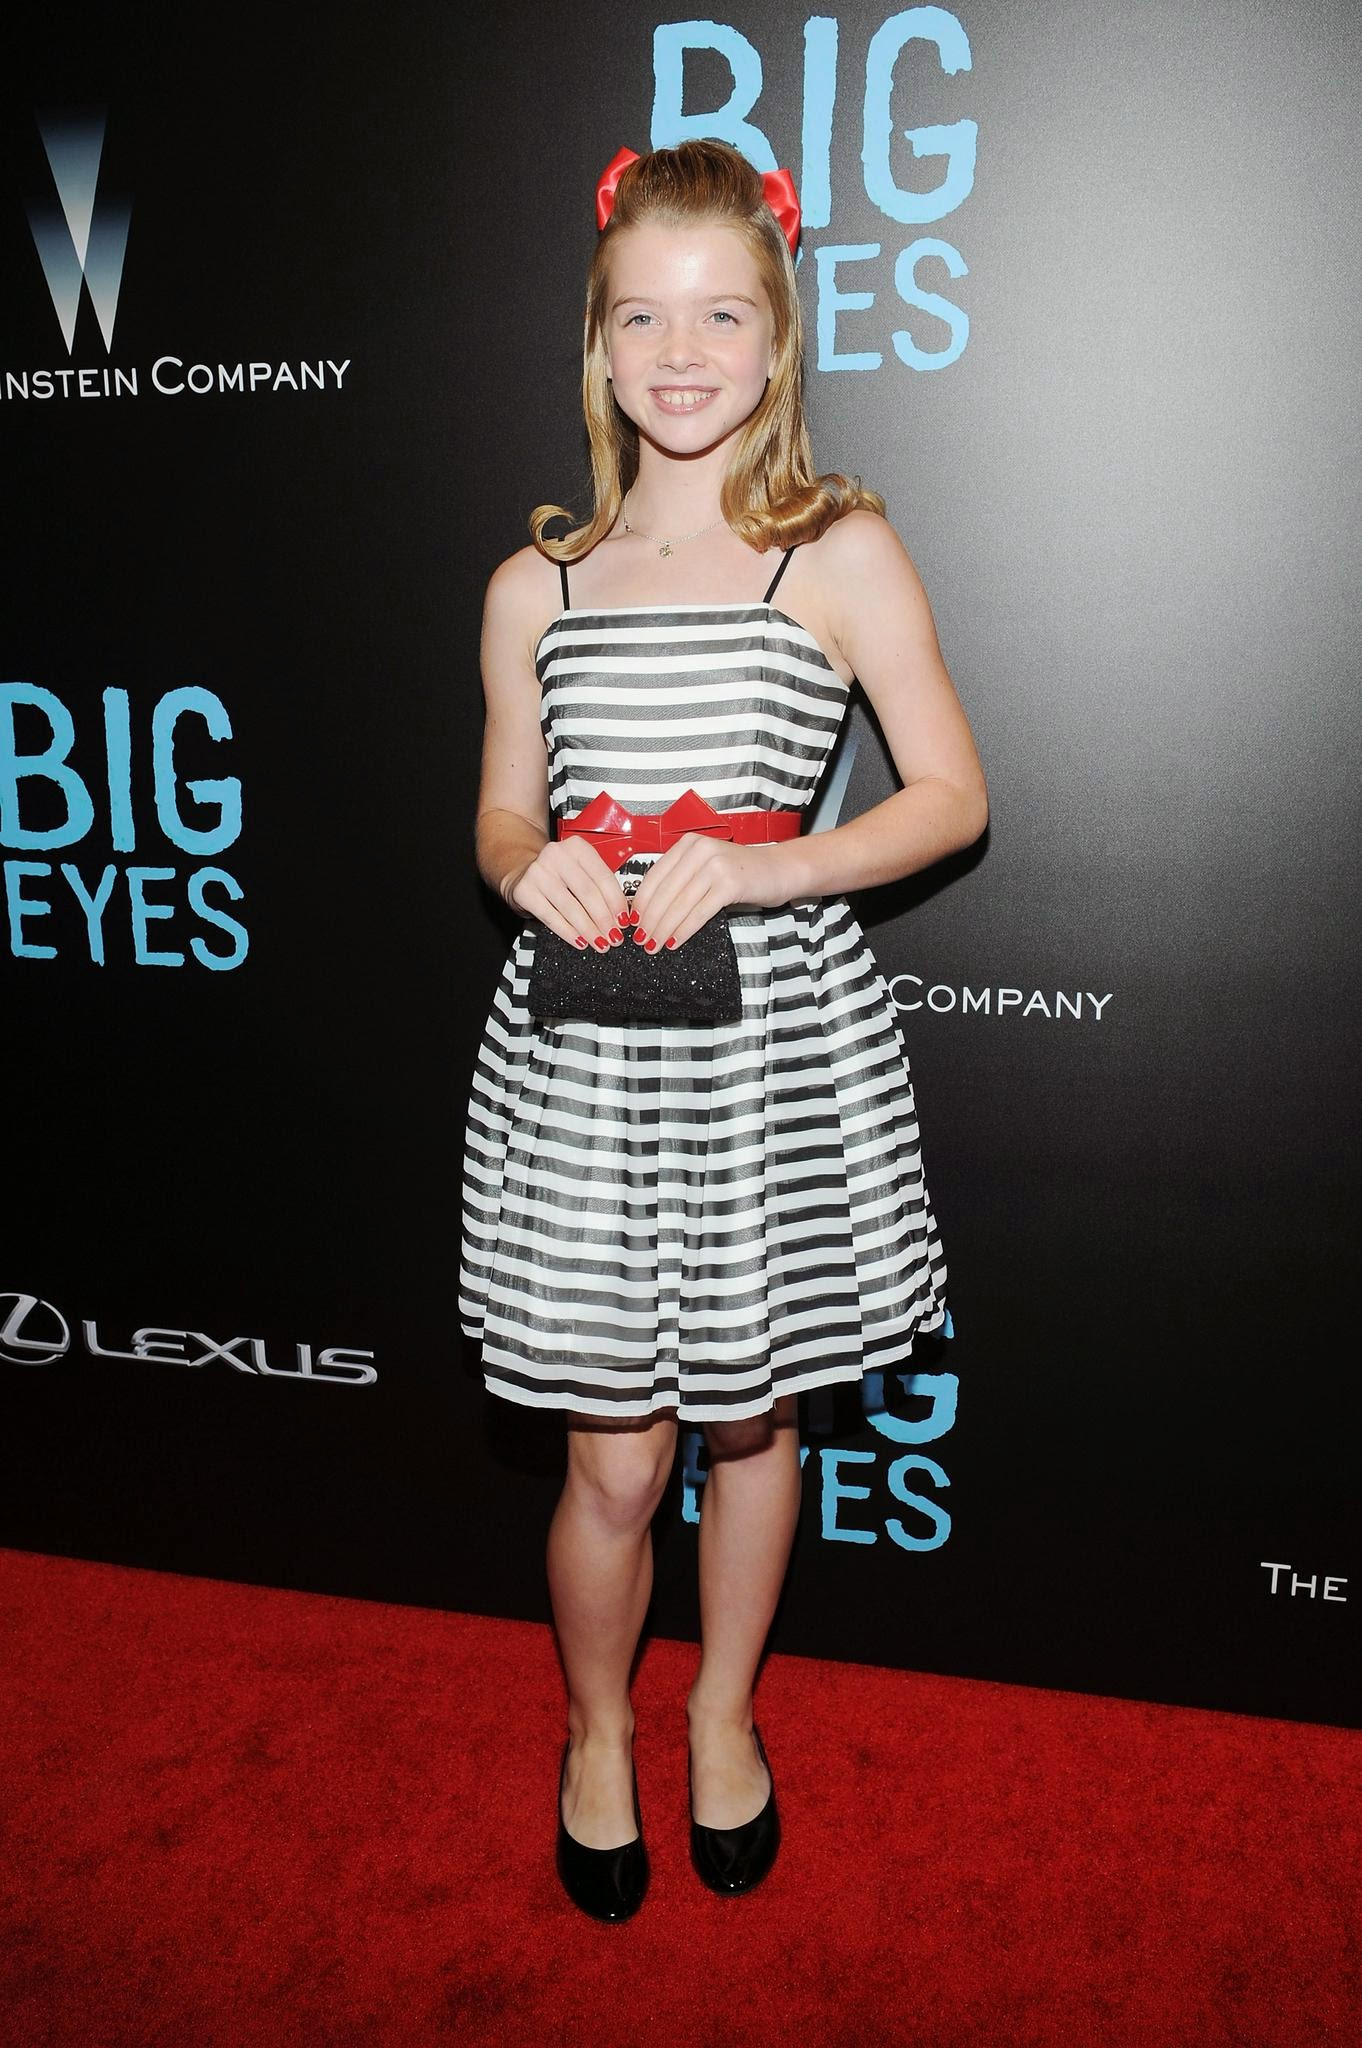 delaney-raye-at-event-of-big-eyes-(2014).jpg